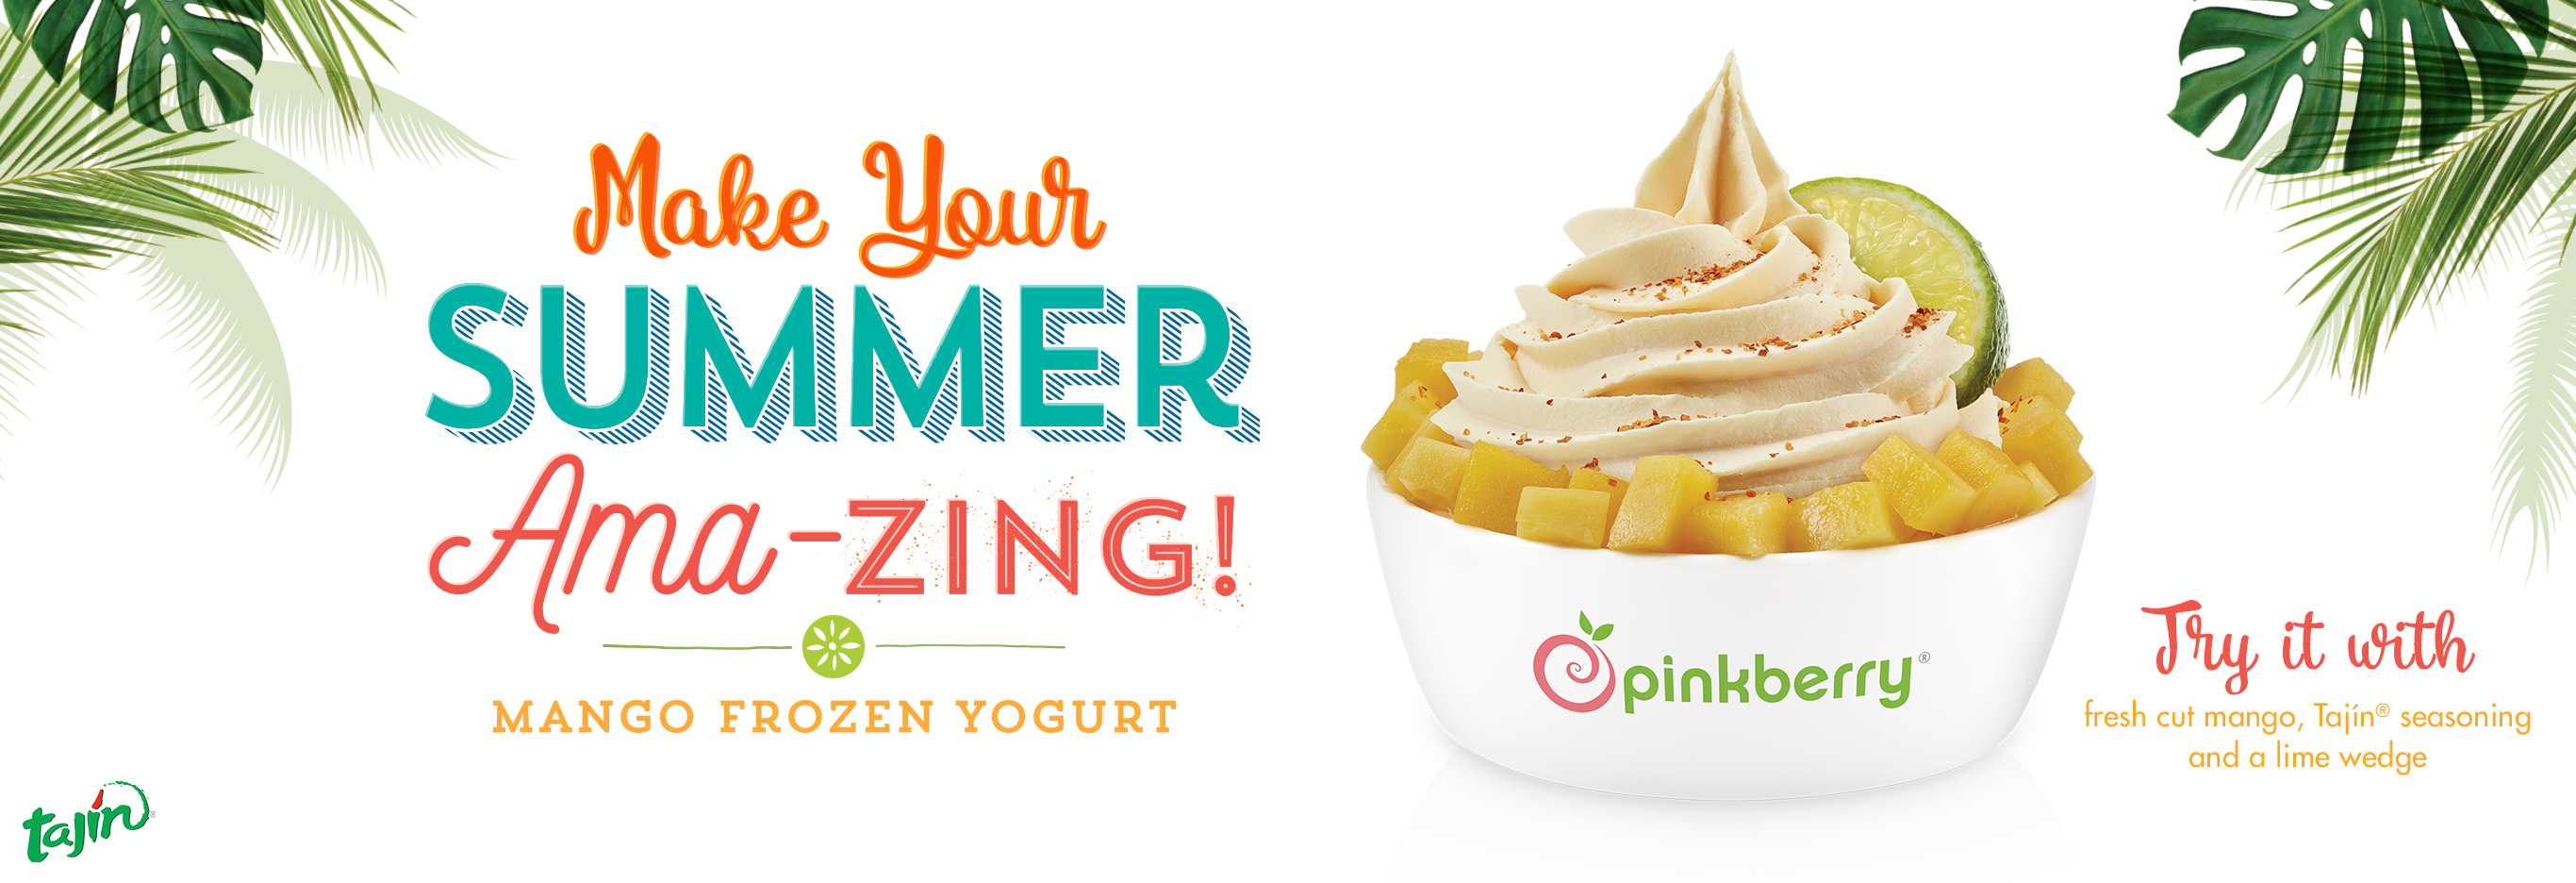 Pinkberry Frozen Yogurt The original tart: where it all began